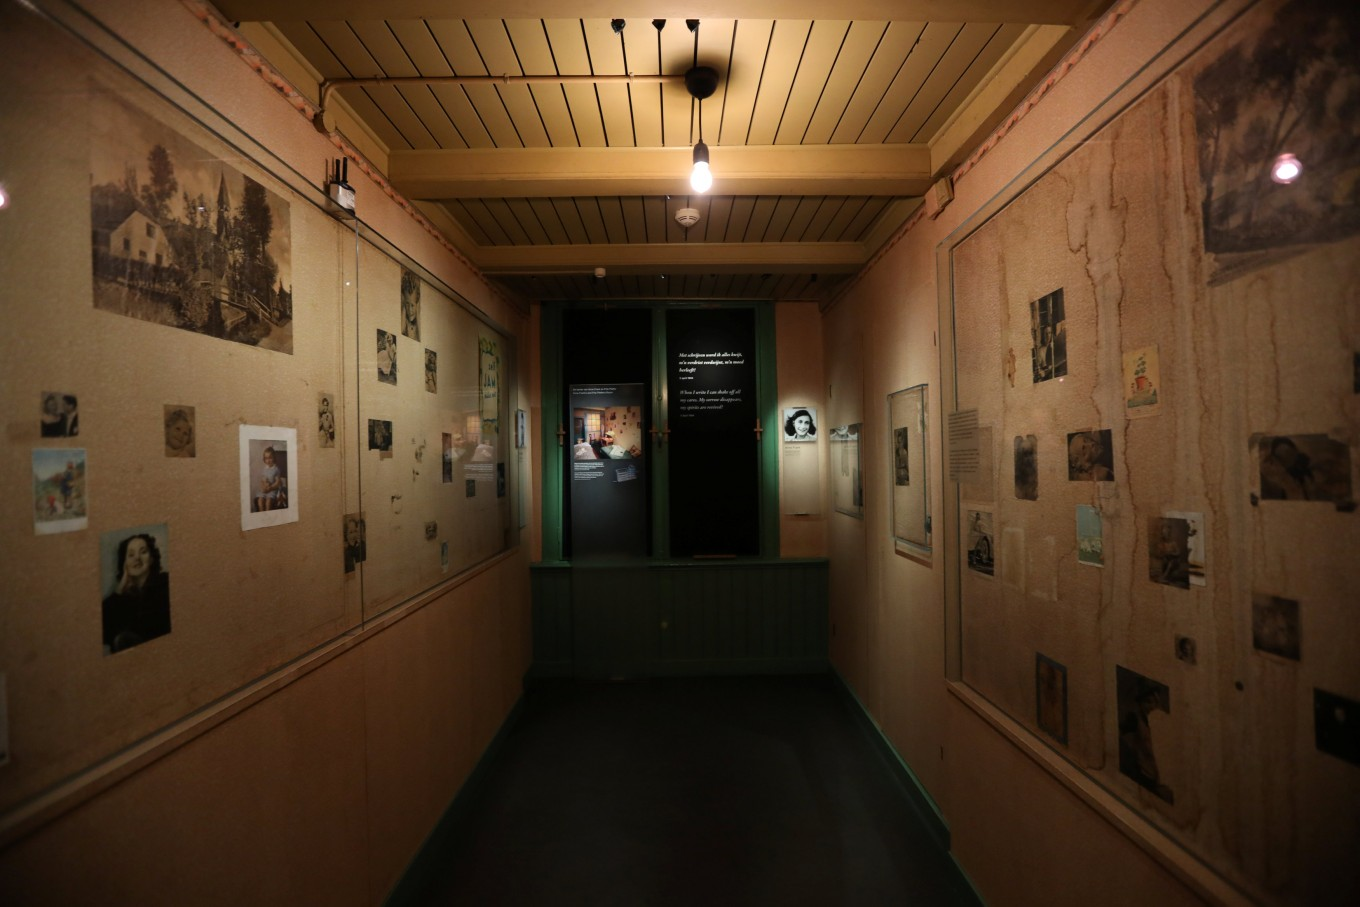 Anne Frank's house revamped for 'new generation' - Art ...